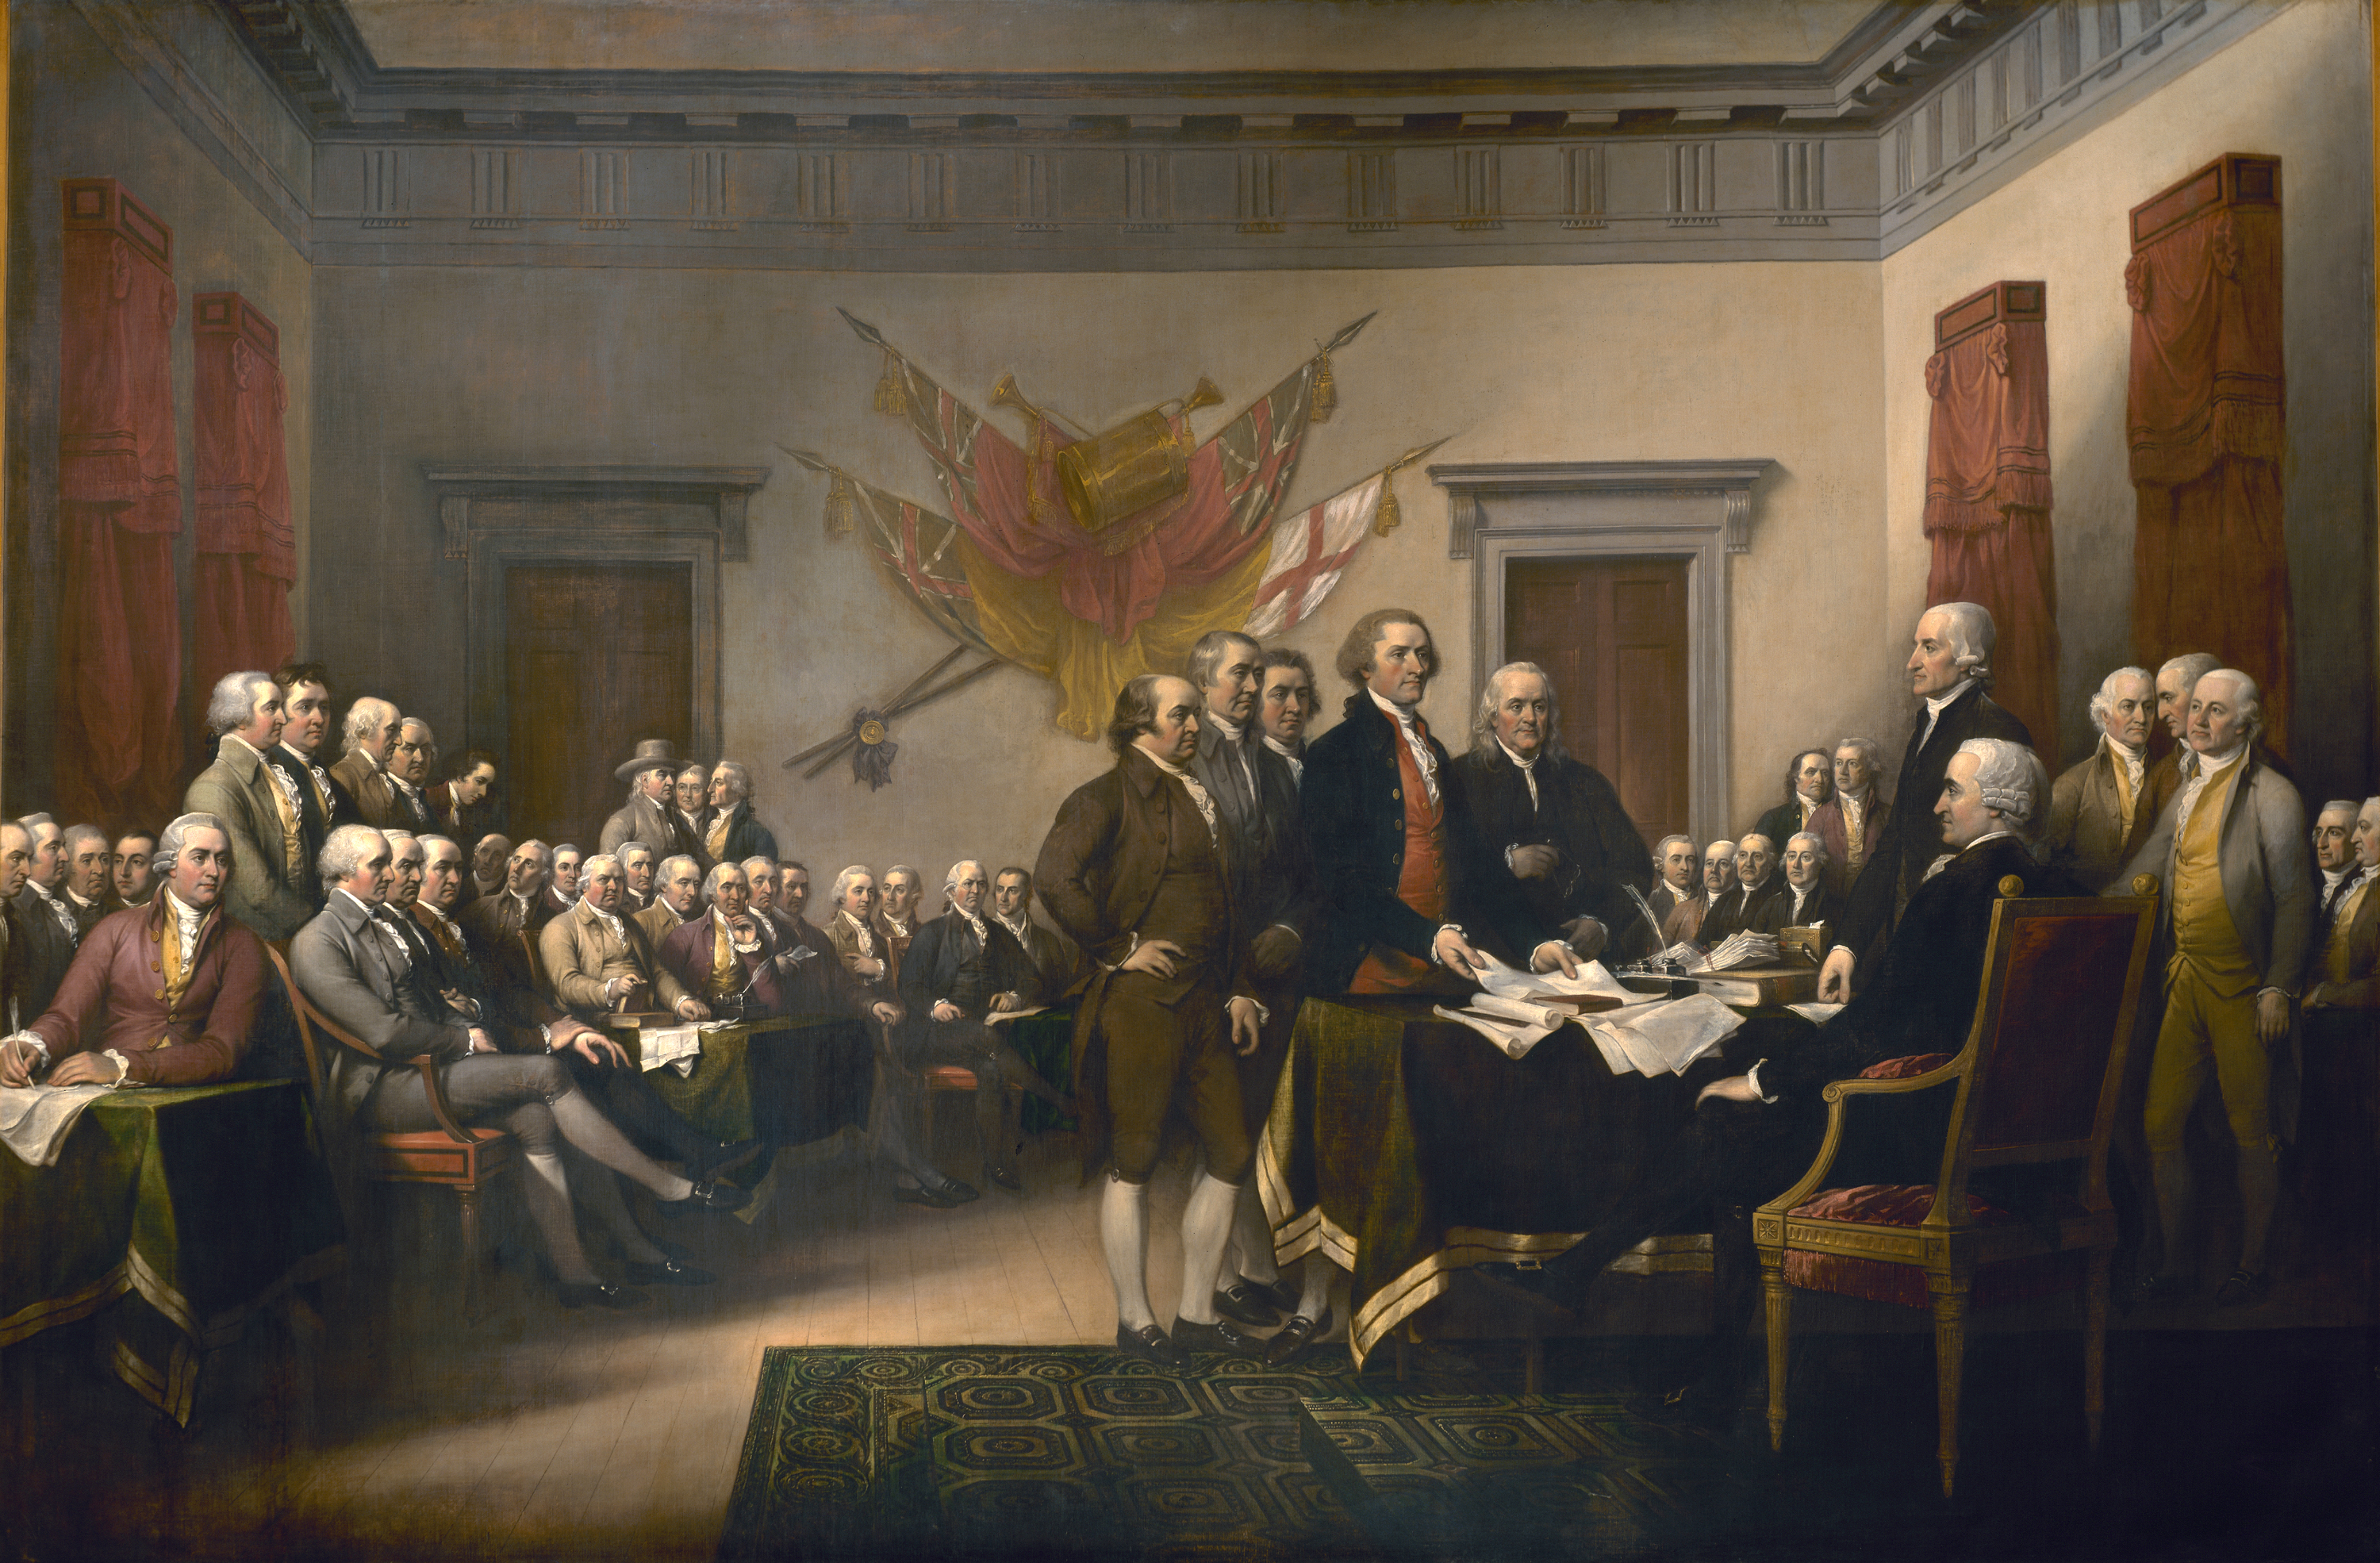 High Resolution Wallpaper | Trumbull's Declaration Of Independence 3000x1970 px